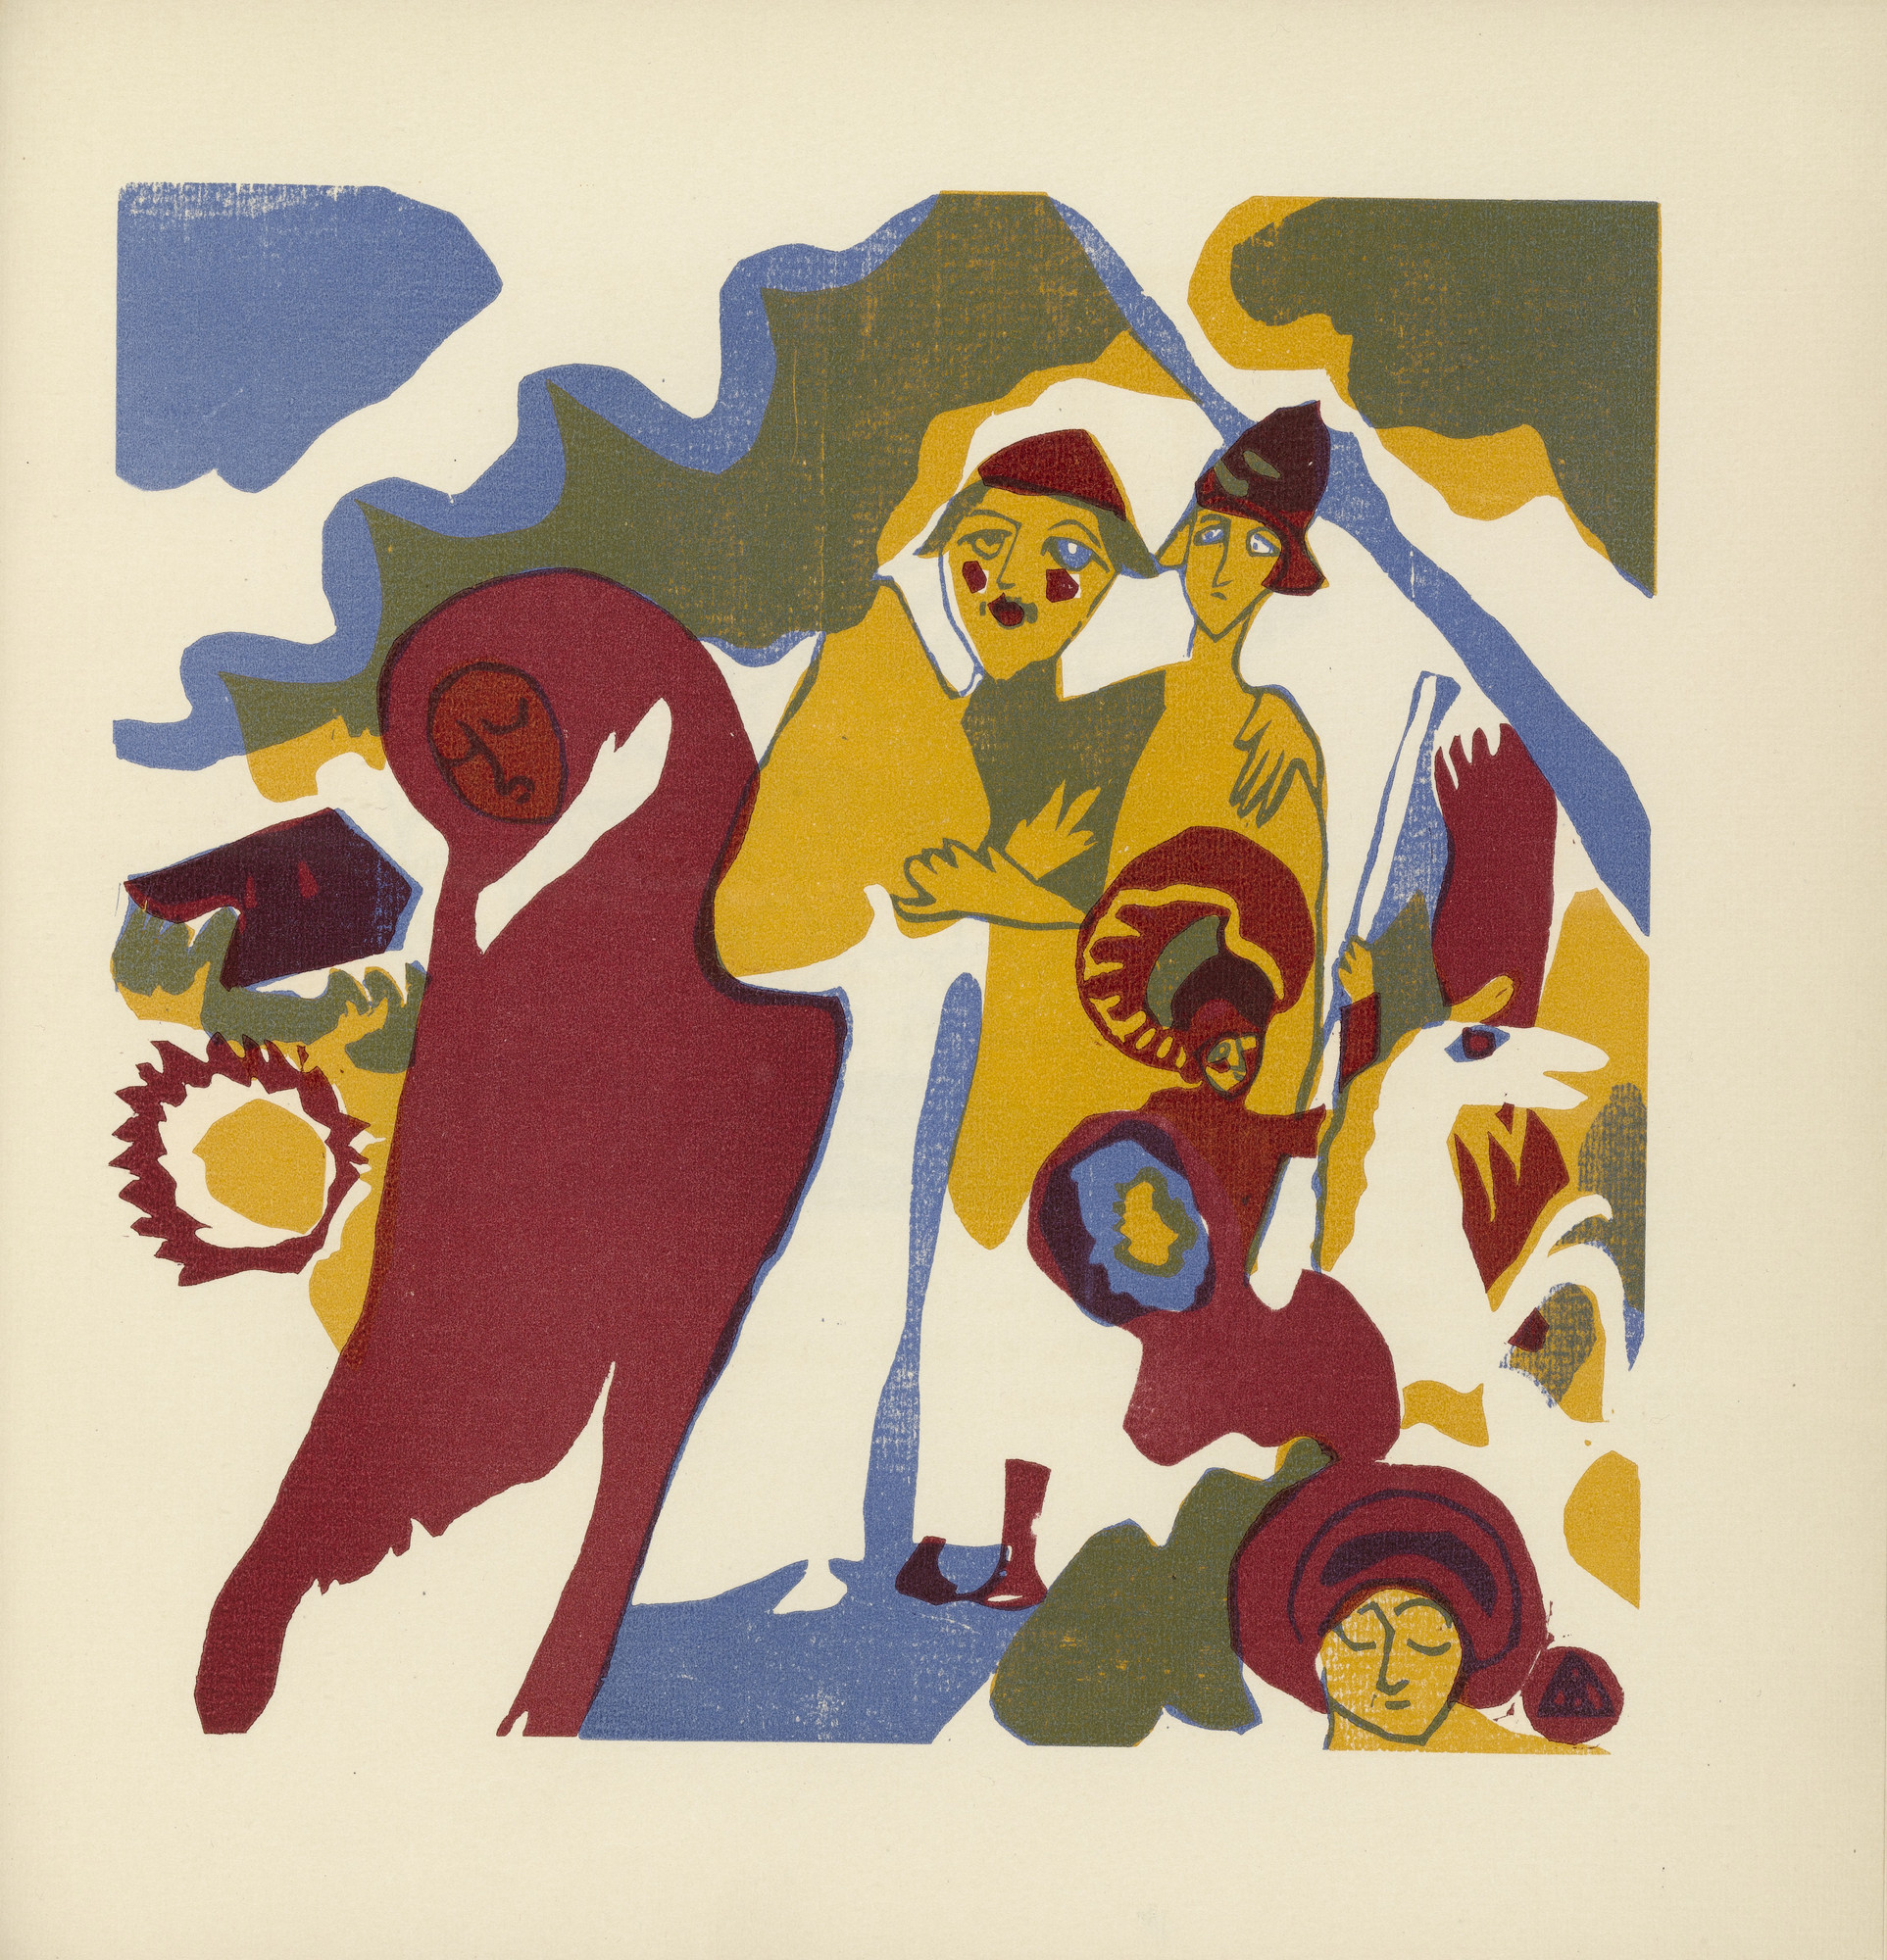 Vasily Kandinsky. All Saints' Day (Allerheiligen) (plate, folio 46) from Klänge (Sounds). (1913)